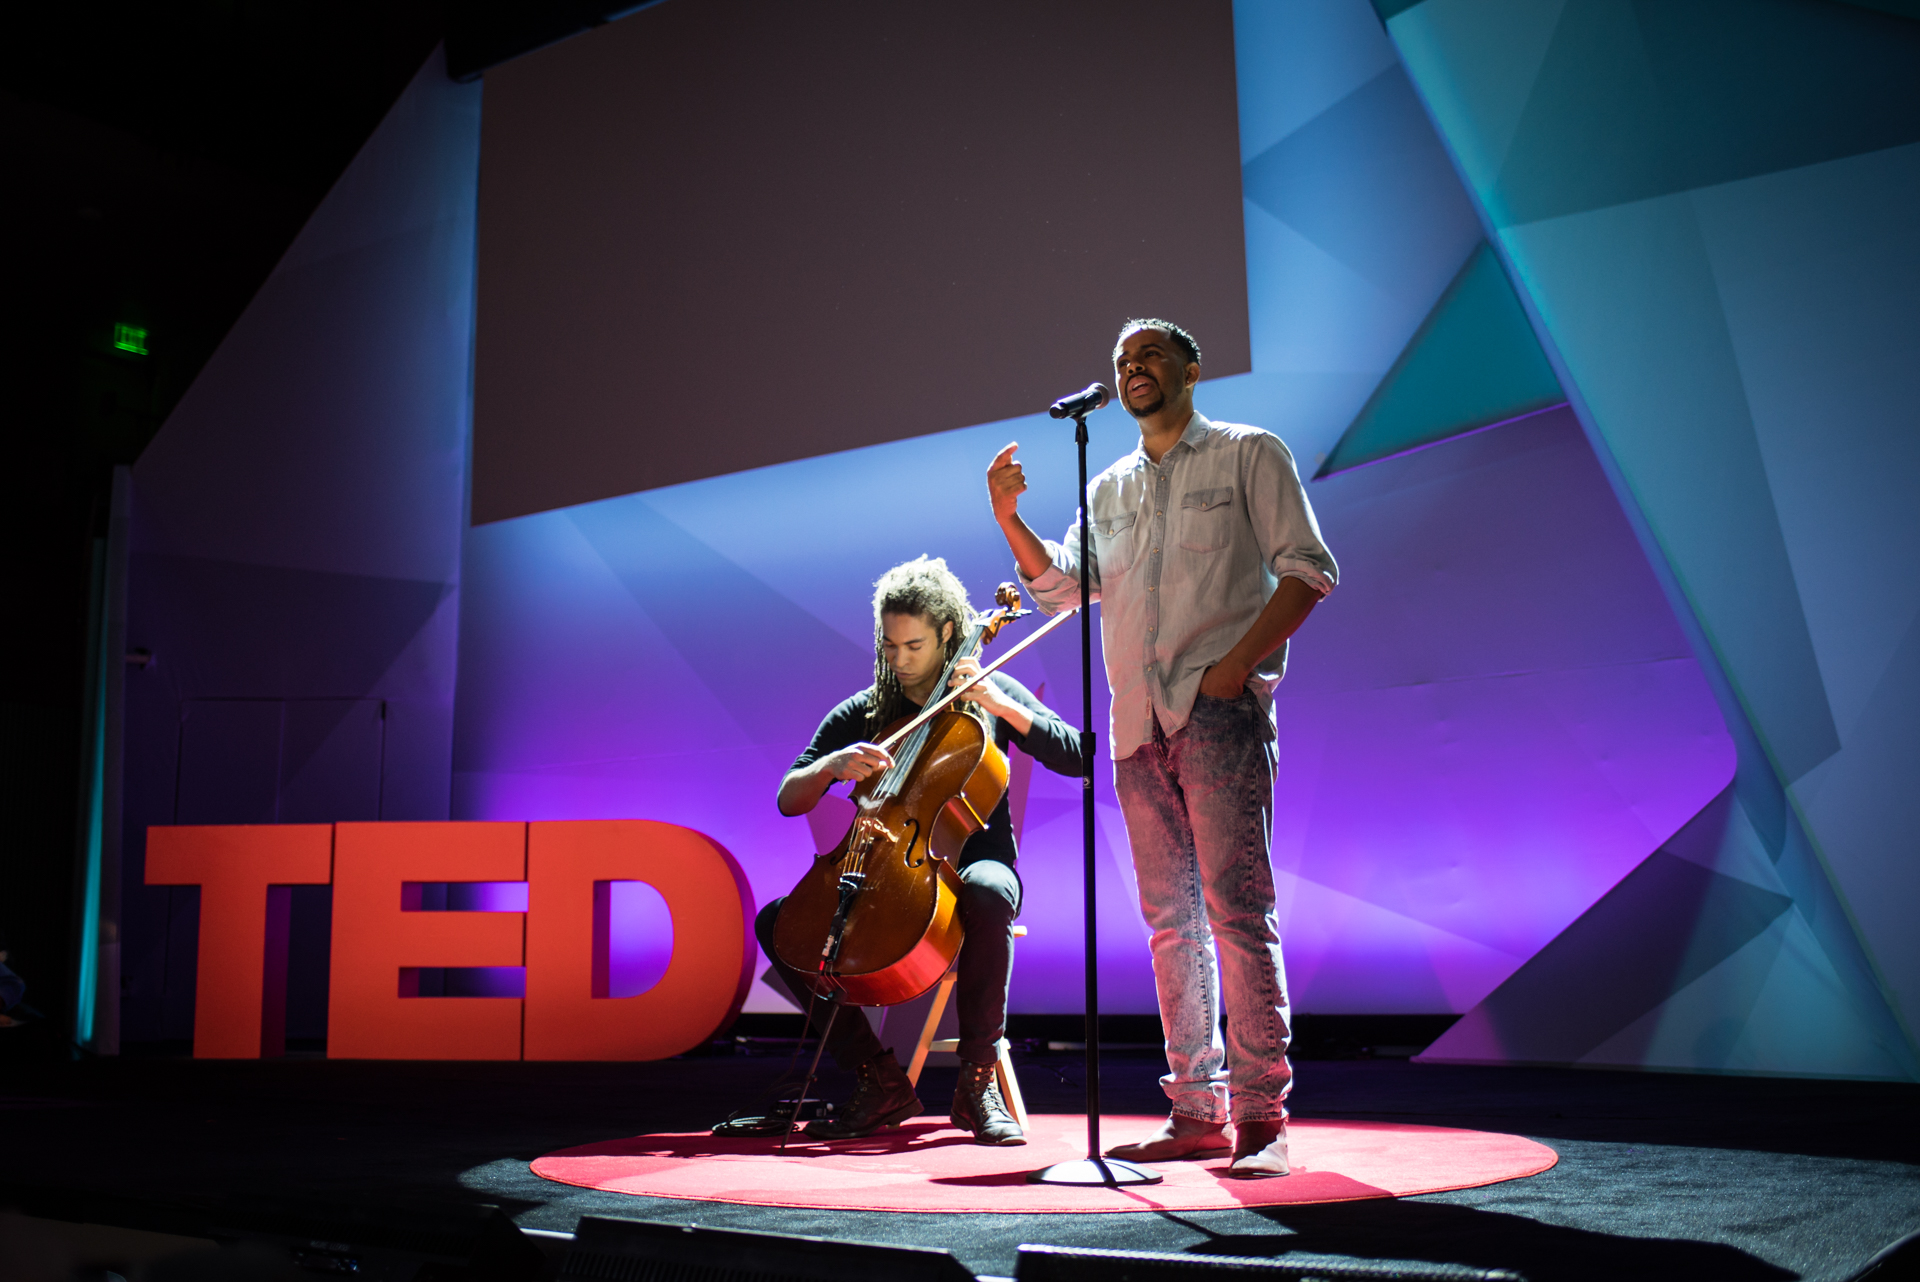 Spoken word artist Ise Lyfe and cellist Michael Feckses performing at TED@IBM salon - Spark, November 16, 2016, San Francisco Jazz, San Francisco, California. Photo: Russell Edwards/TED